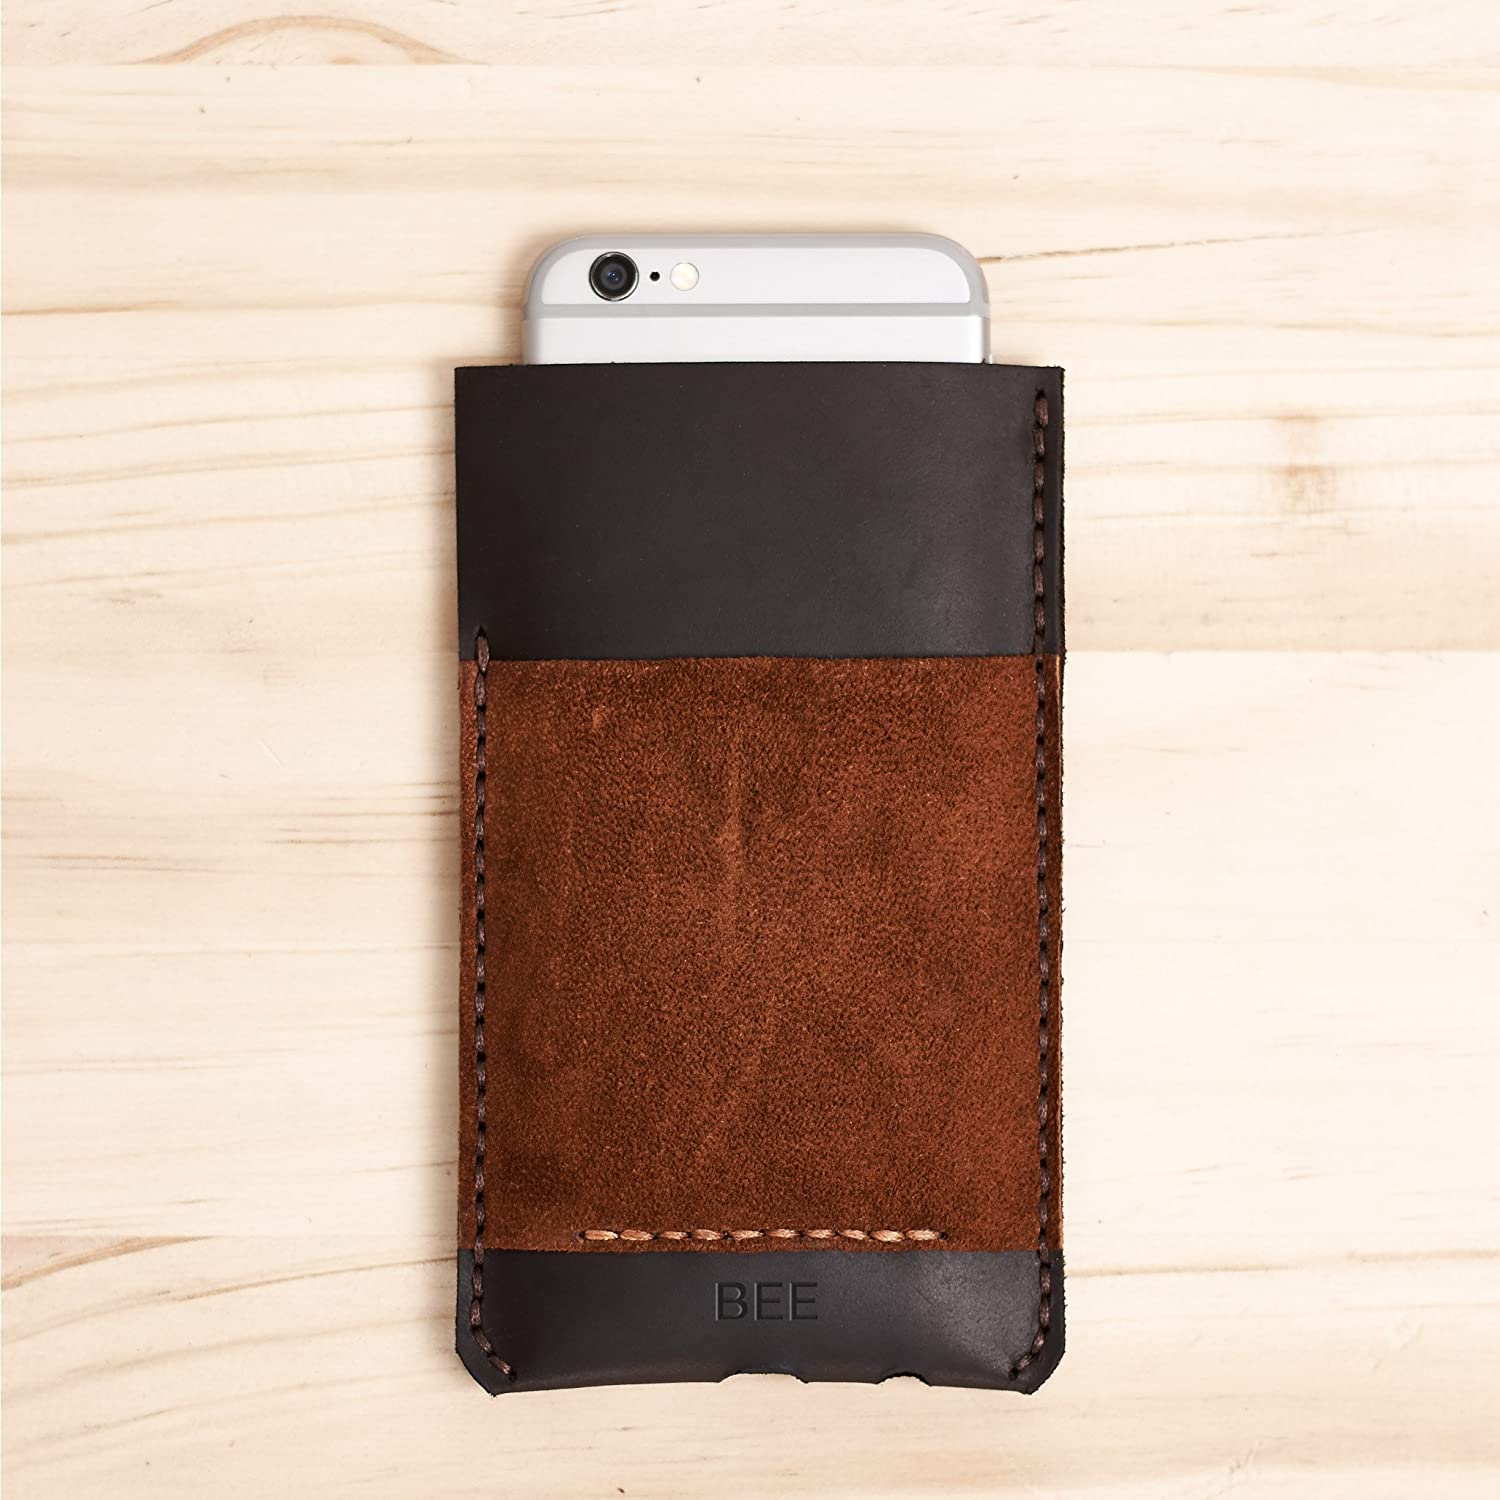 Brown & Tan Leather iPhone Case. iPhone 8, 8 Plus and iPhone X Slim Wallet Case for. Phone Card holder Sleeve. Mens Custom Monogram Gift